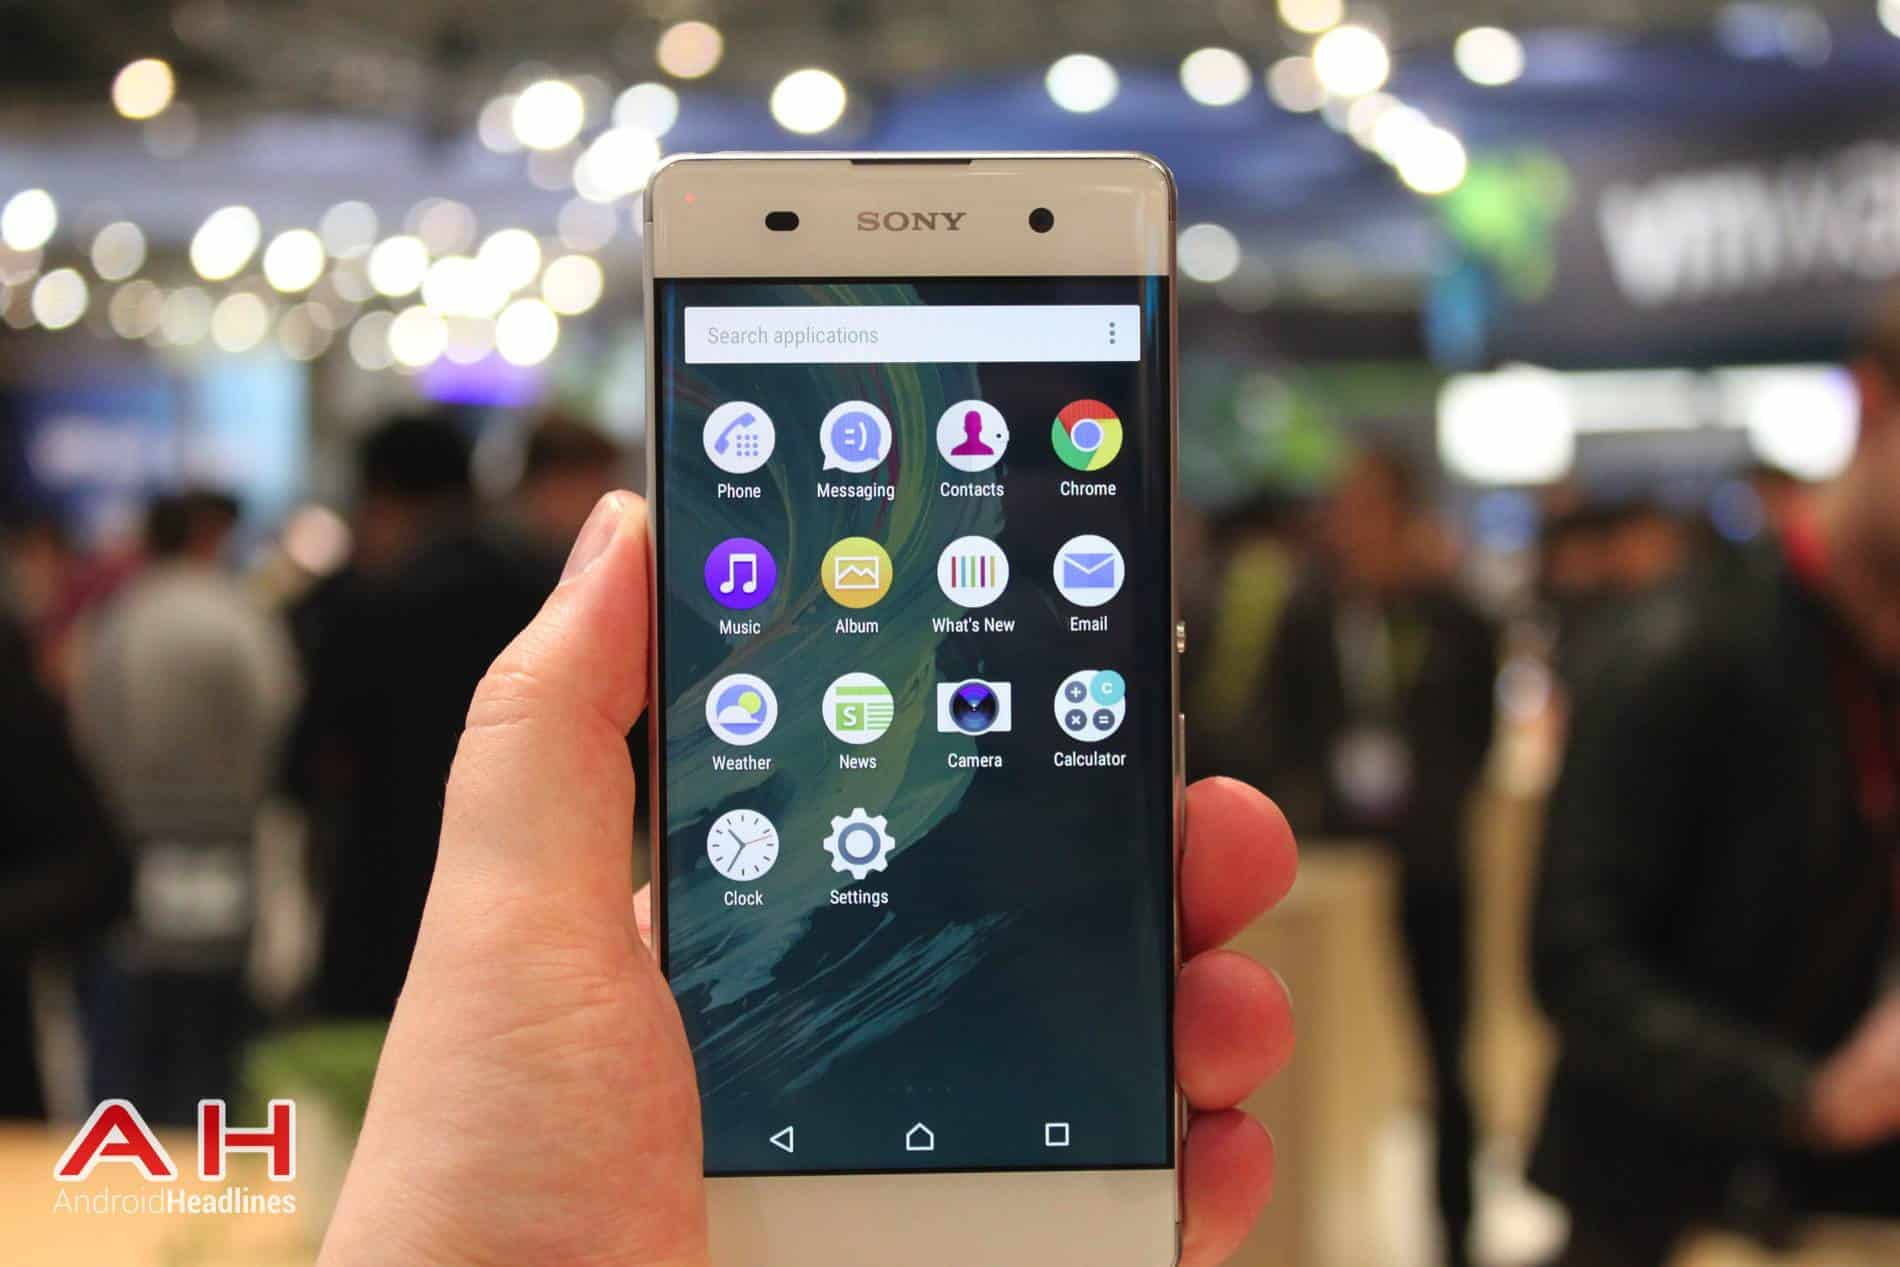 Sony Xperia XA Hands On MWC AH 7